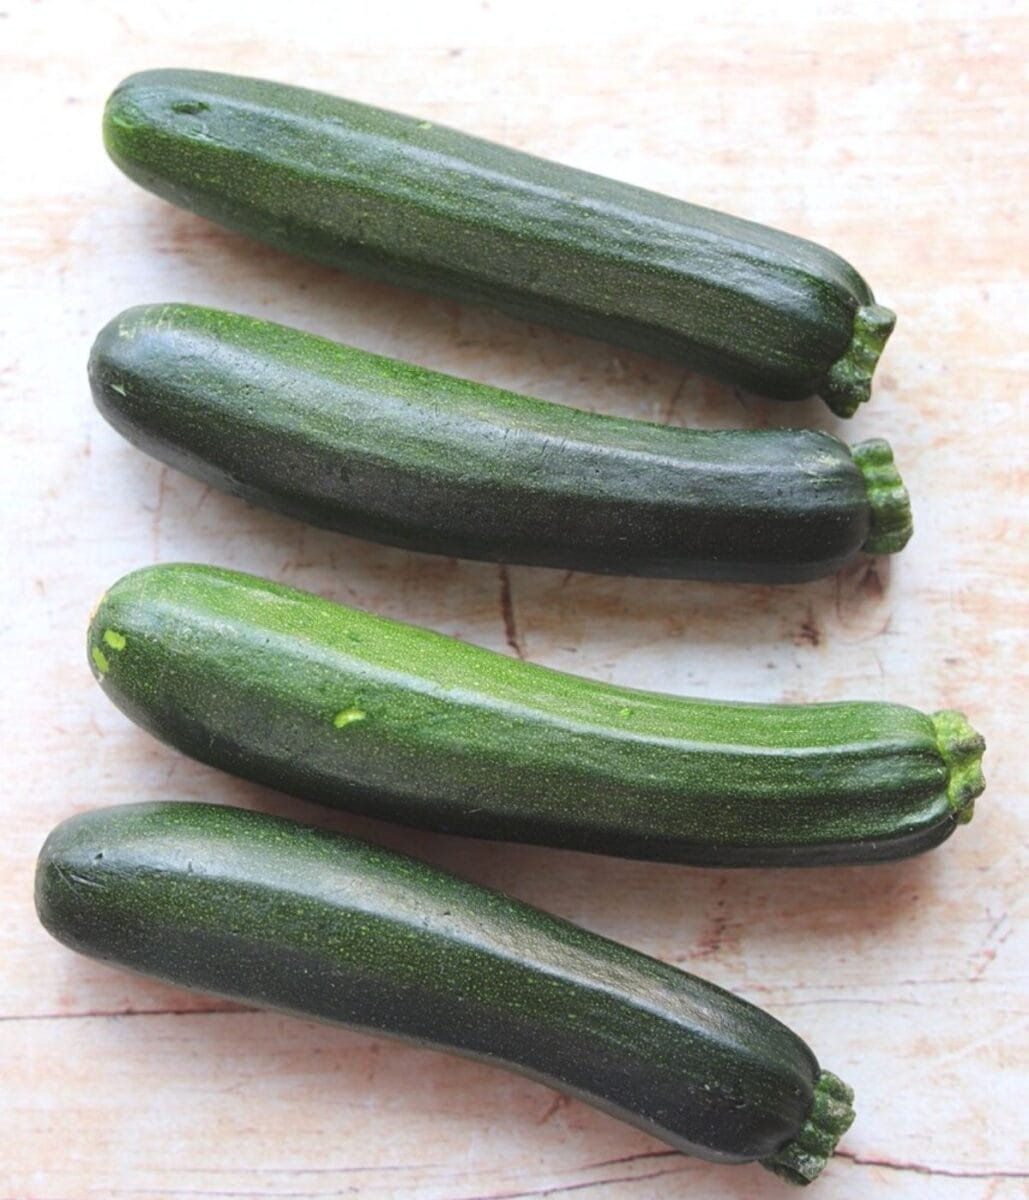 Image of four green zucchini.